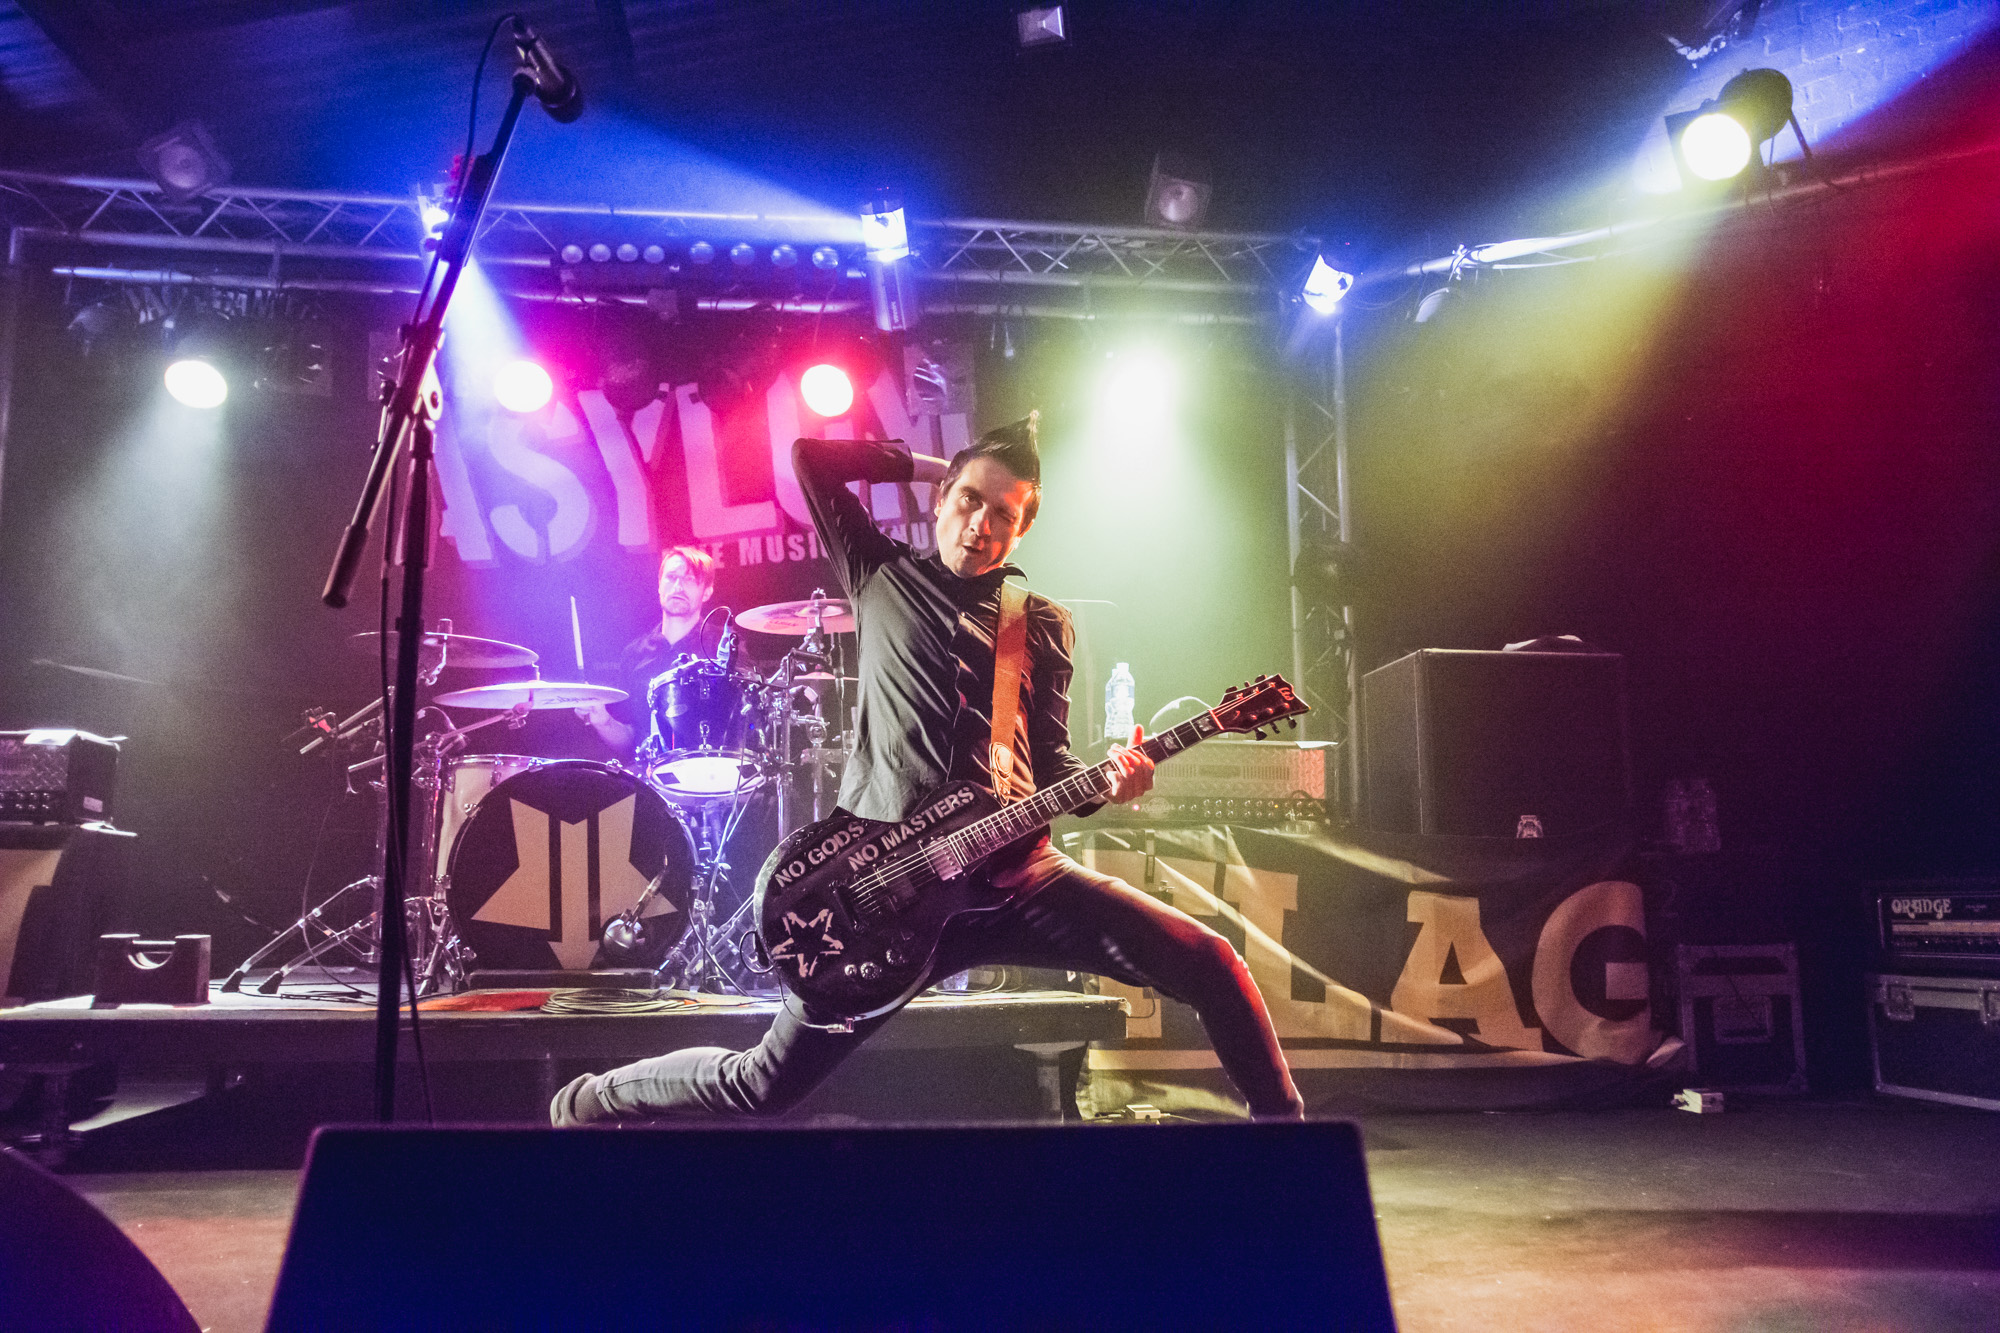 Anti-Flag-The-Asylum-Birmingham_20181030_02.jpg